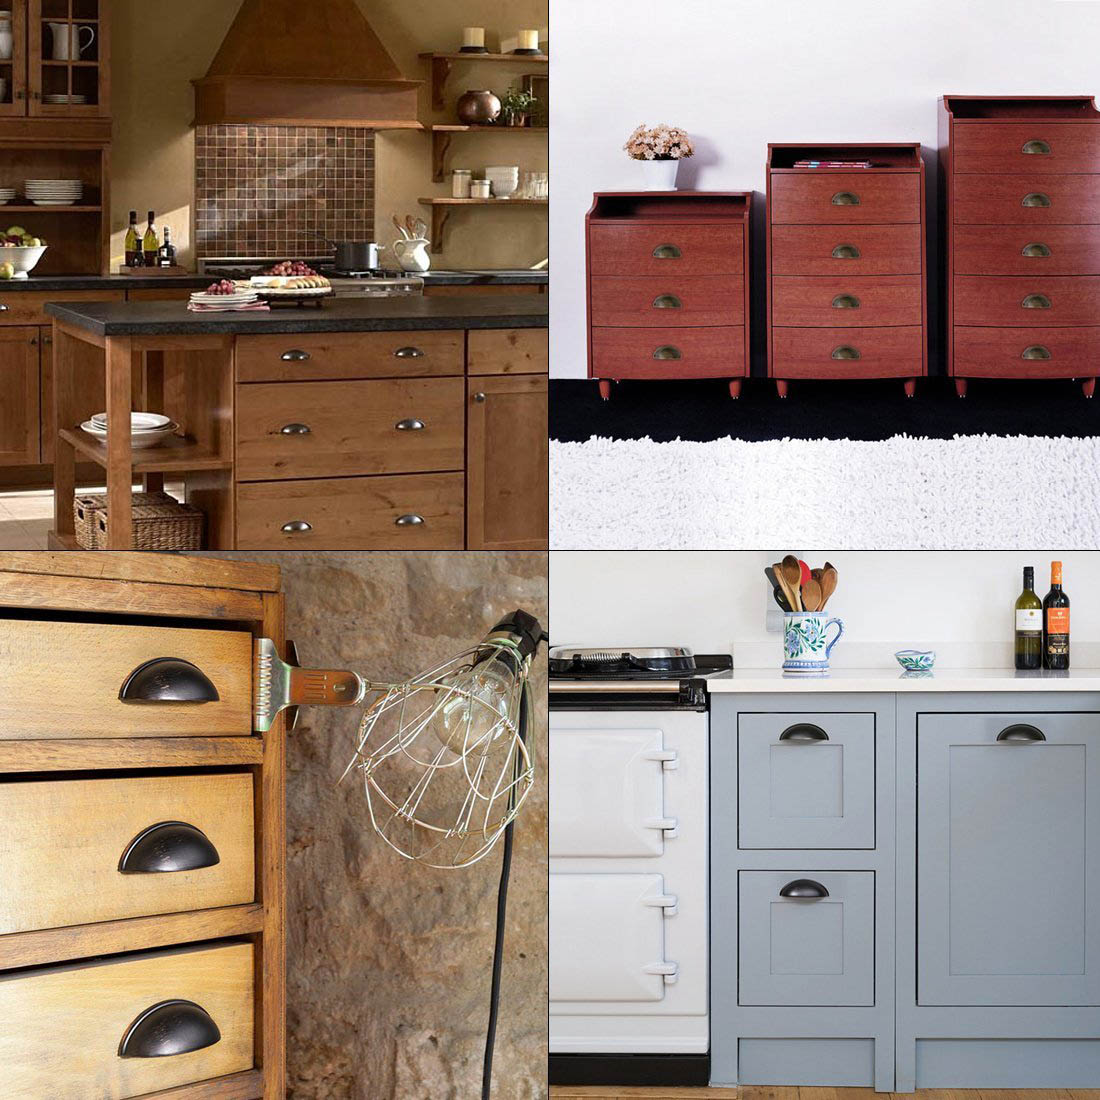 Iron Shell Pull Handles Cup Drawer